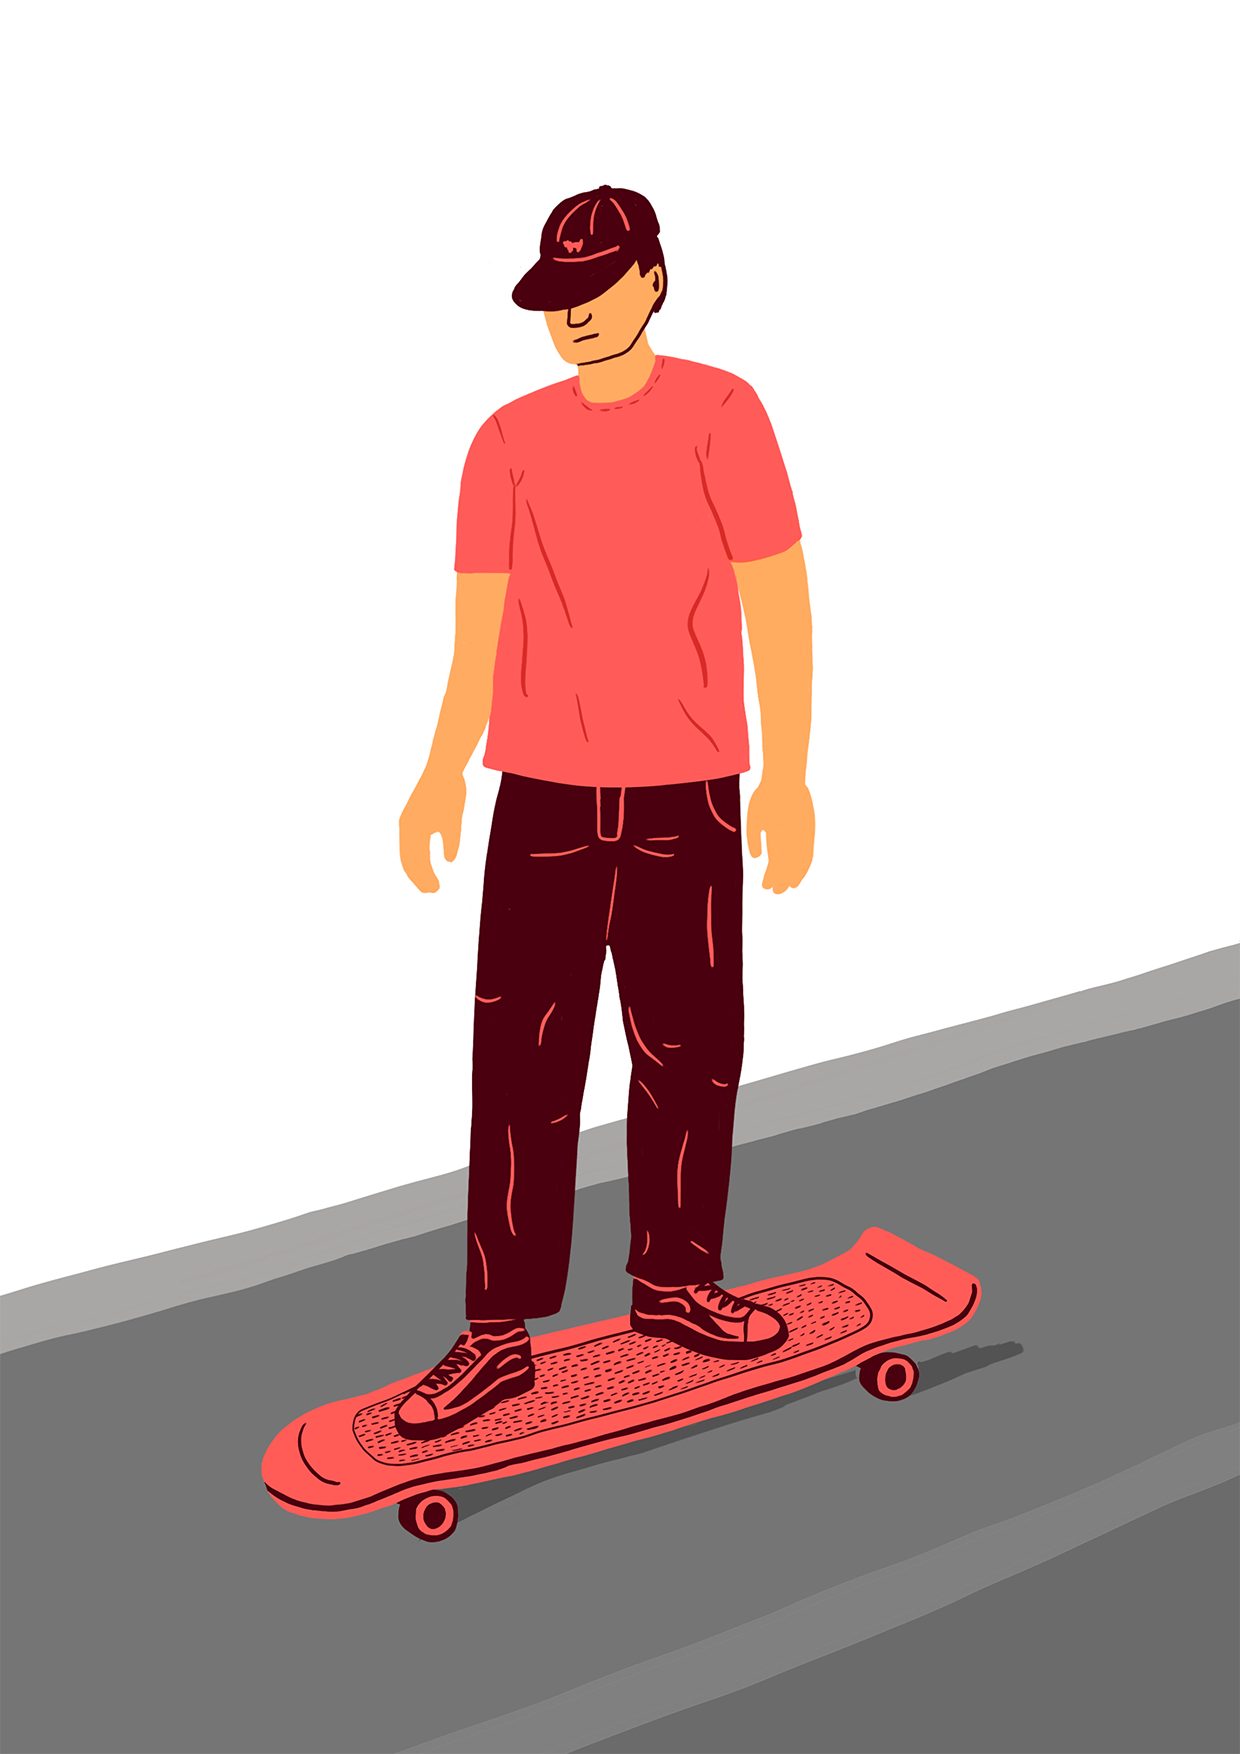 Skater Longboard Berlin Illustration